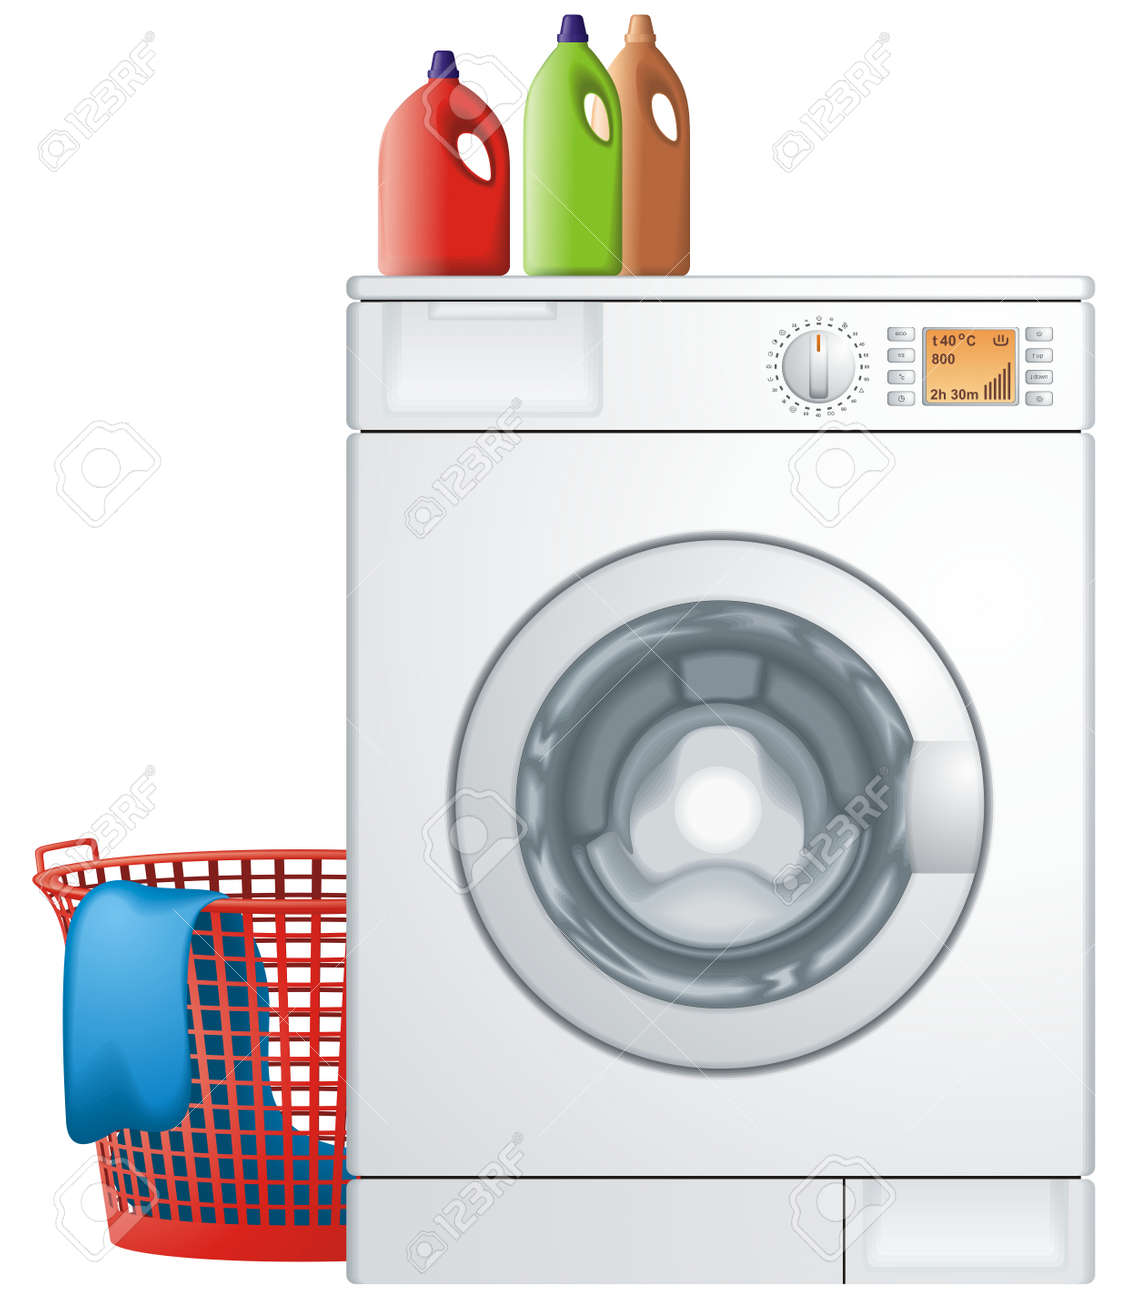 washing machine and dryer clip art. washing machine stock vector - 8609665 and dryer clip art i